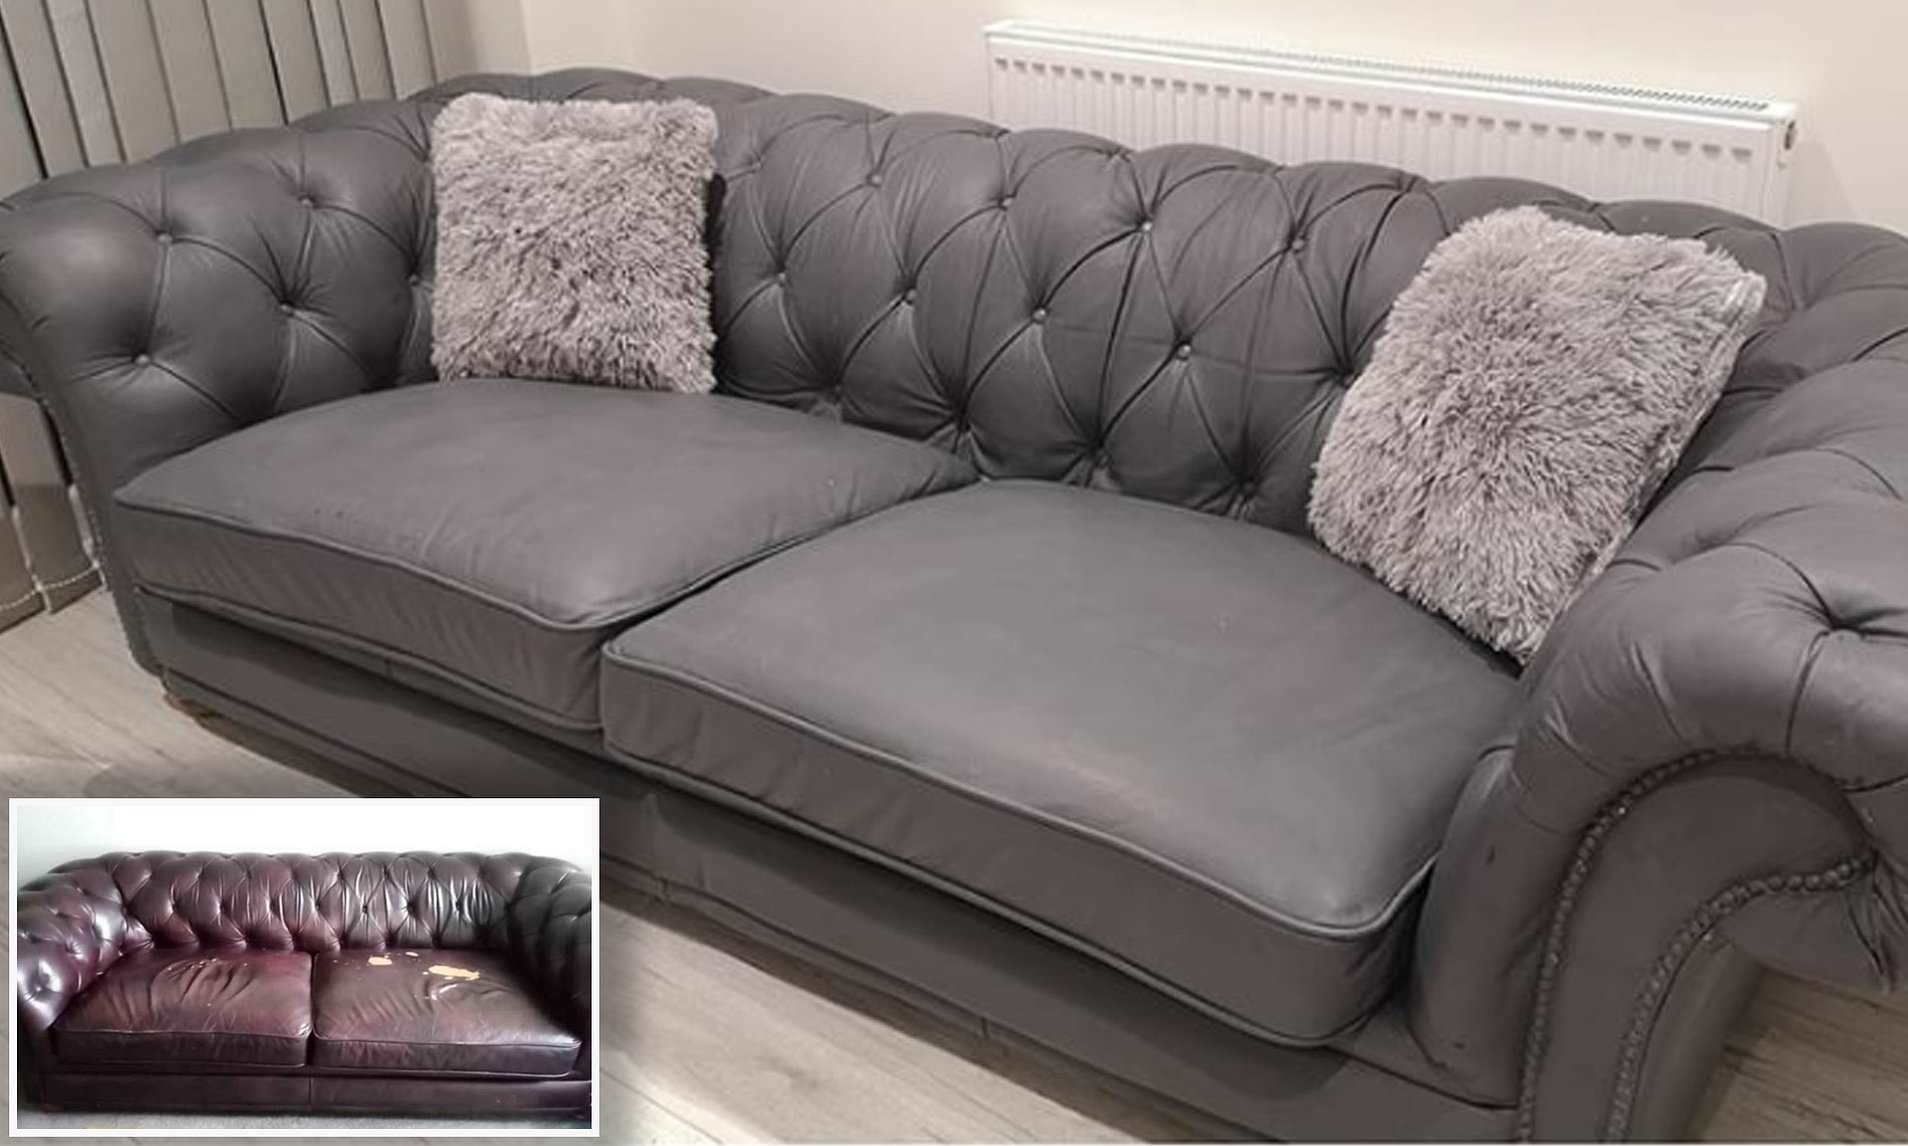 Woman Transforms Her Battered Leather Sofa For Just 30 Using Grey Paint Daily Mail Online